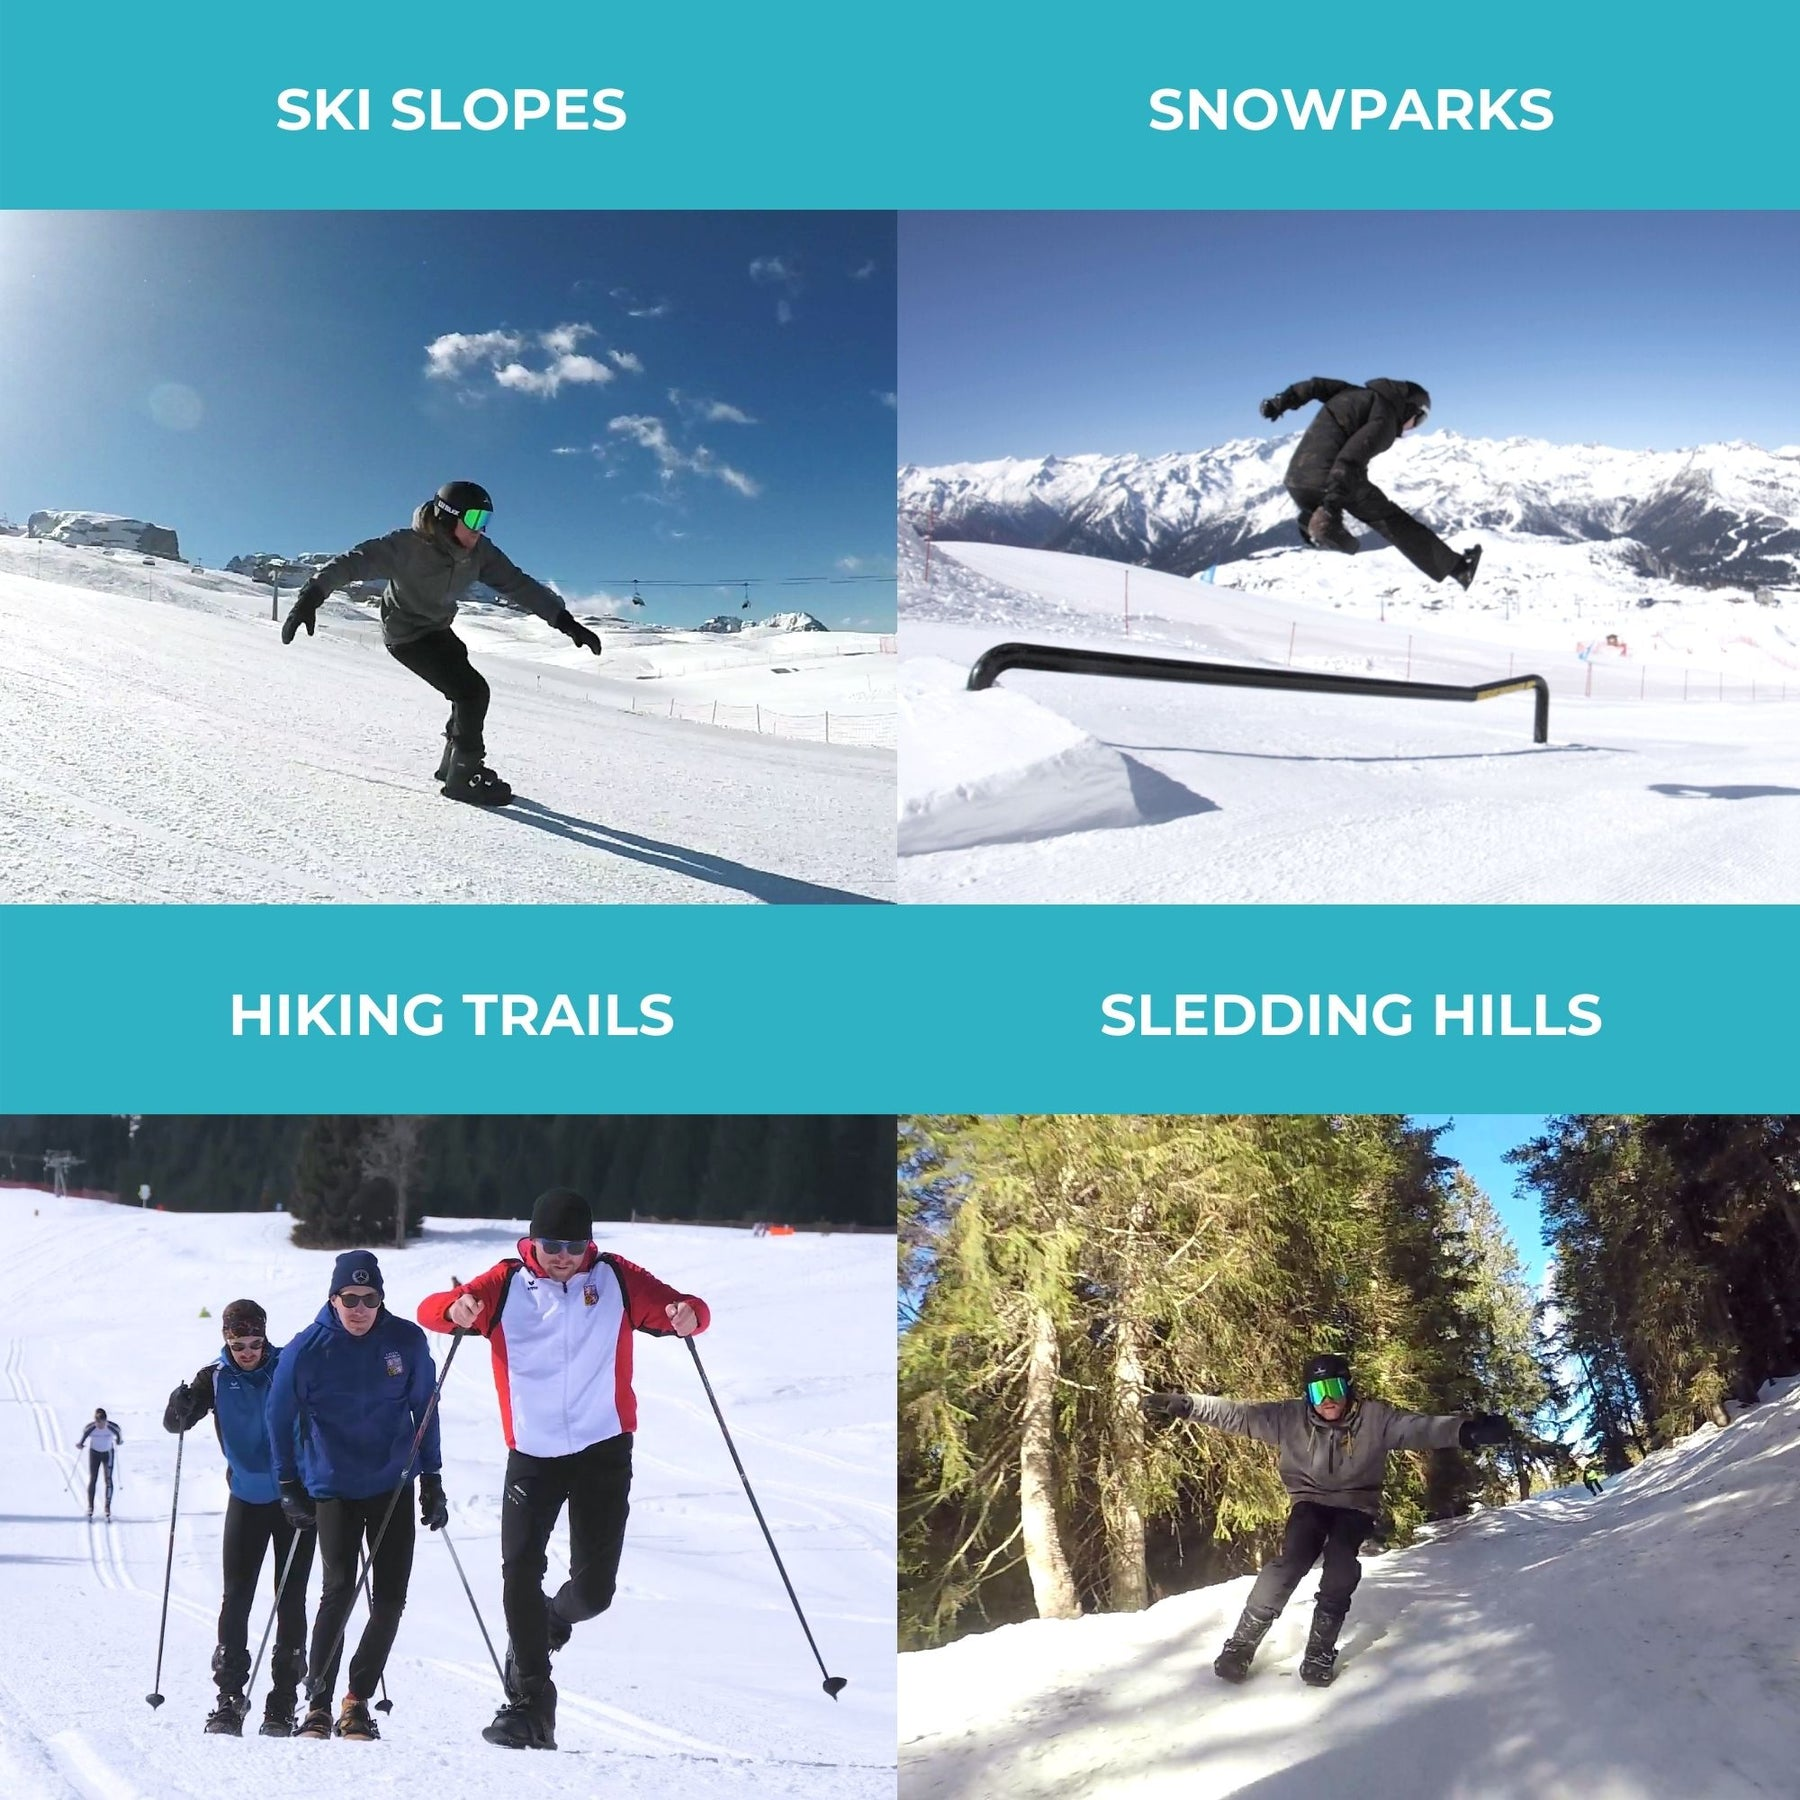 Outdoor Skiing Mini Sled Snow Board Ski Boots Ski Shoes Combine Skates With Skis